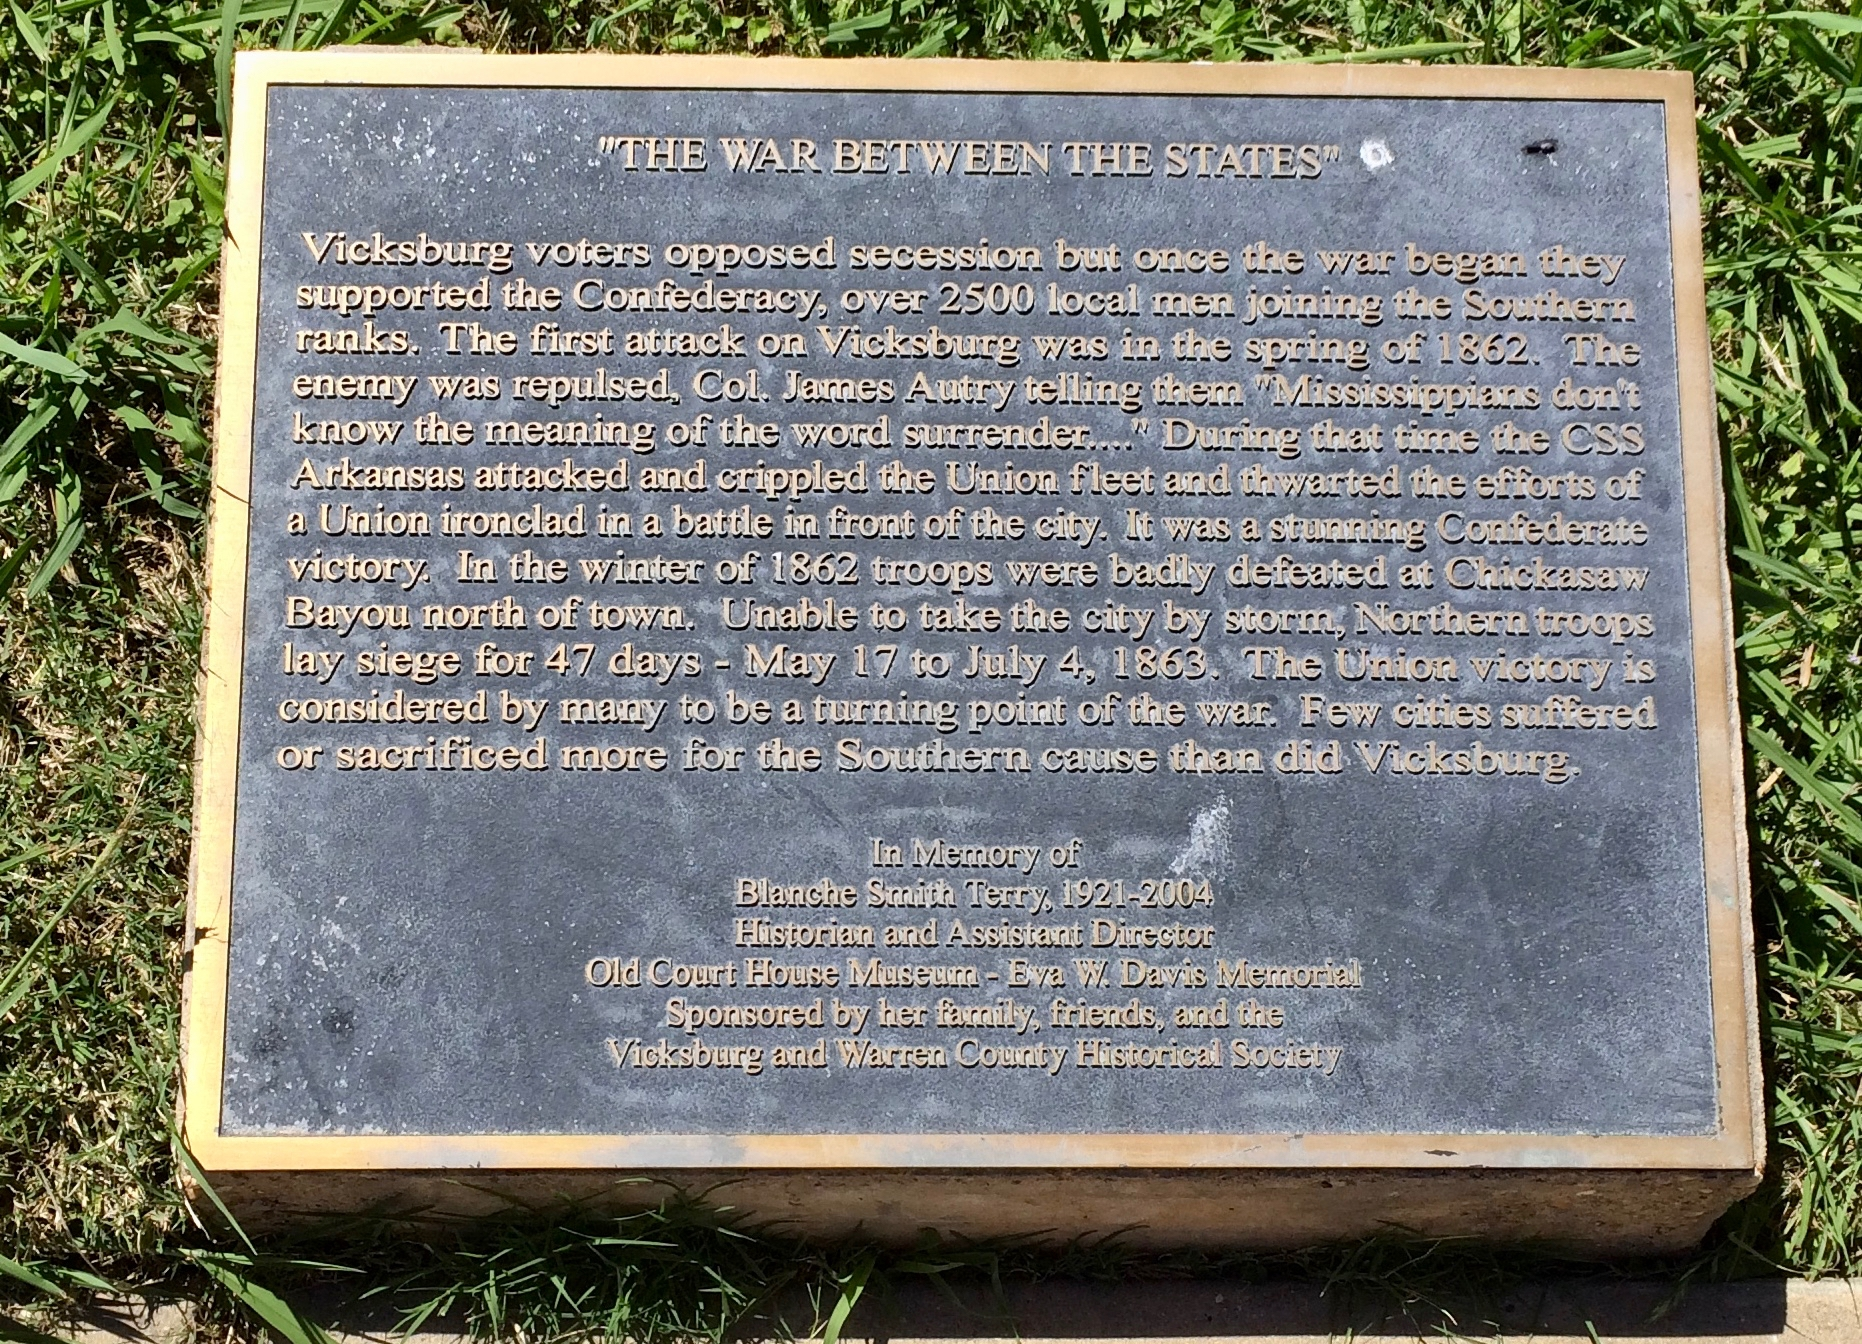 """The War Between the States"" Marker"